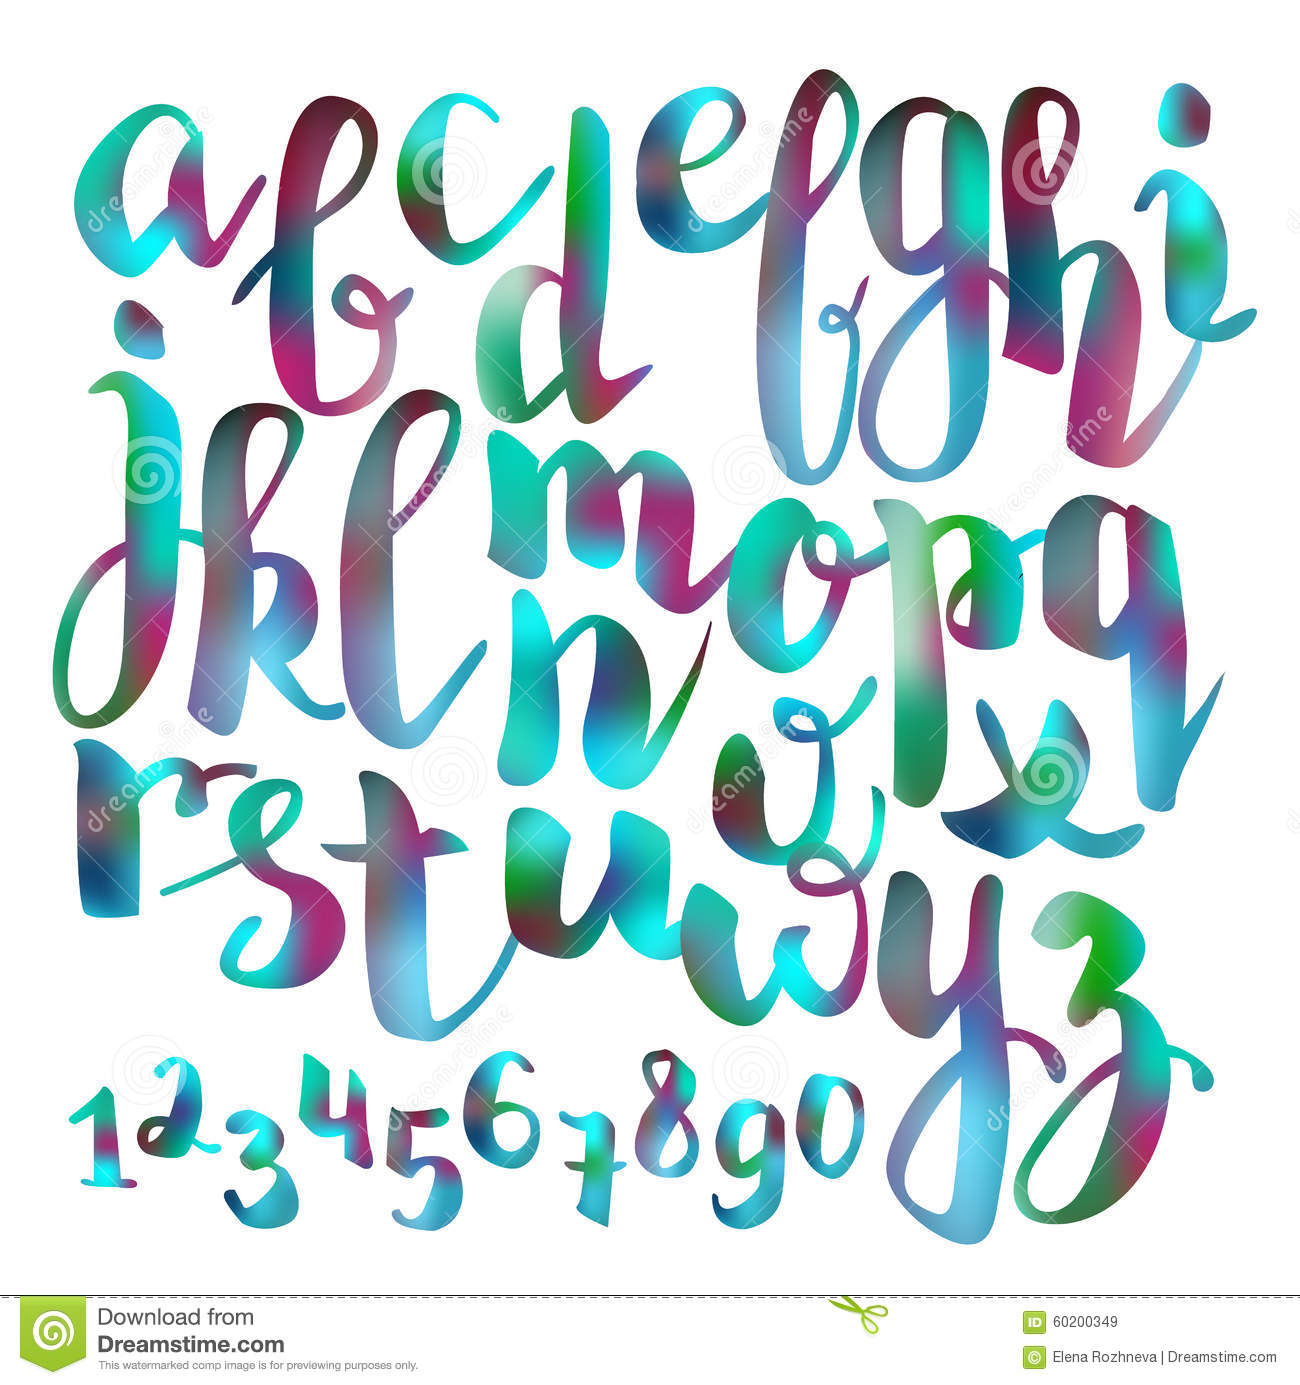 Handwritten brush pen colorful font stock illustration